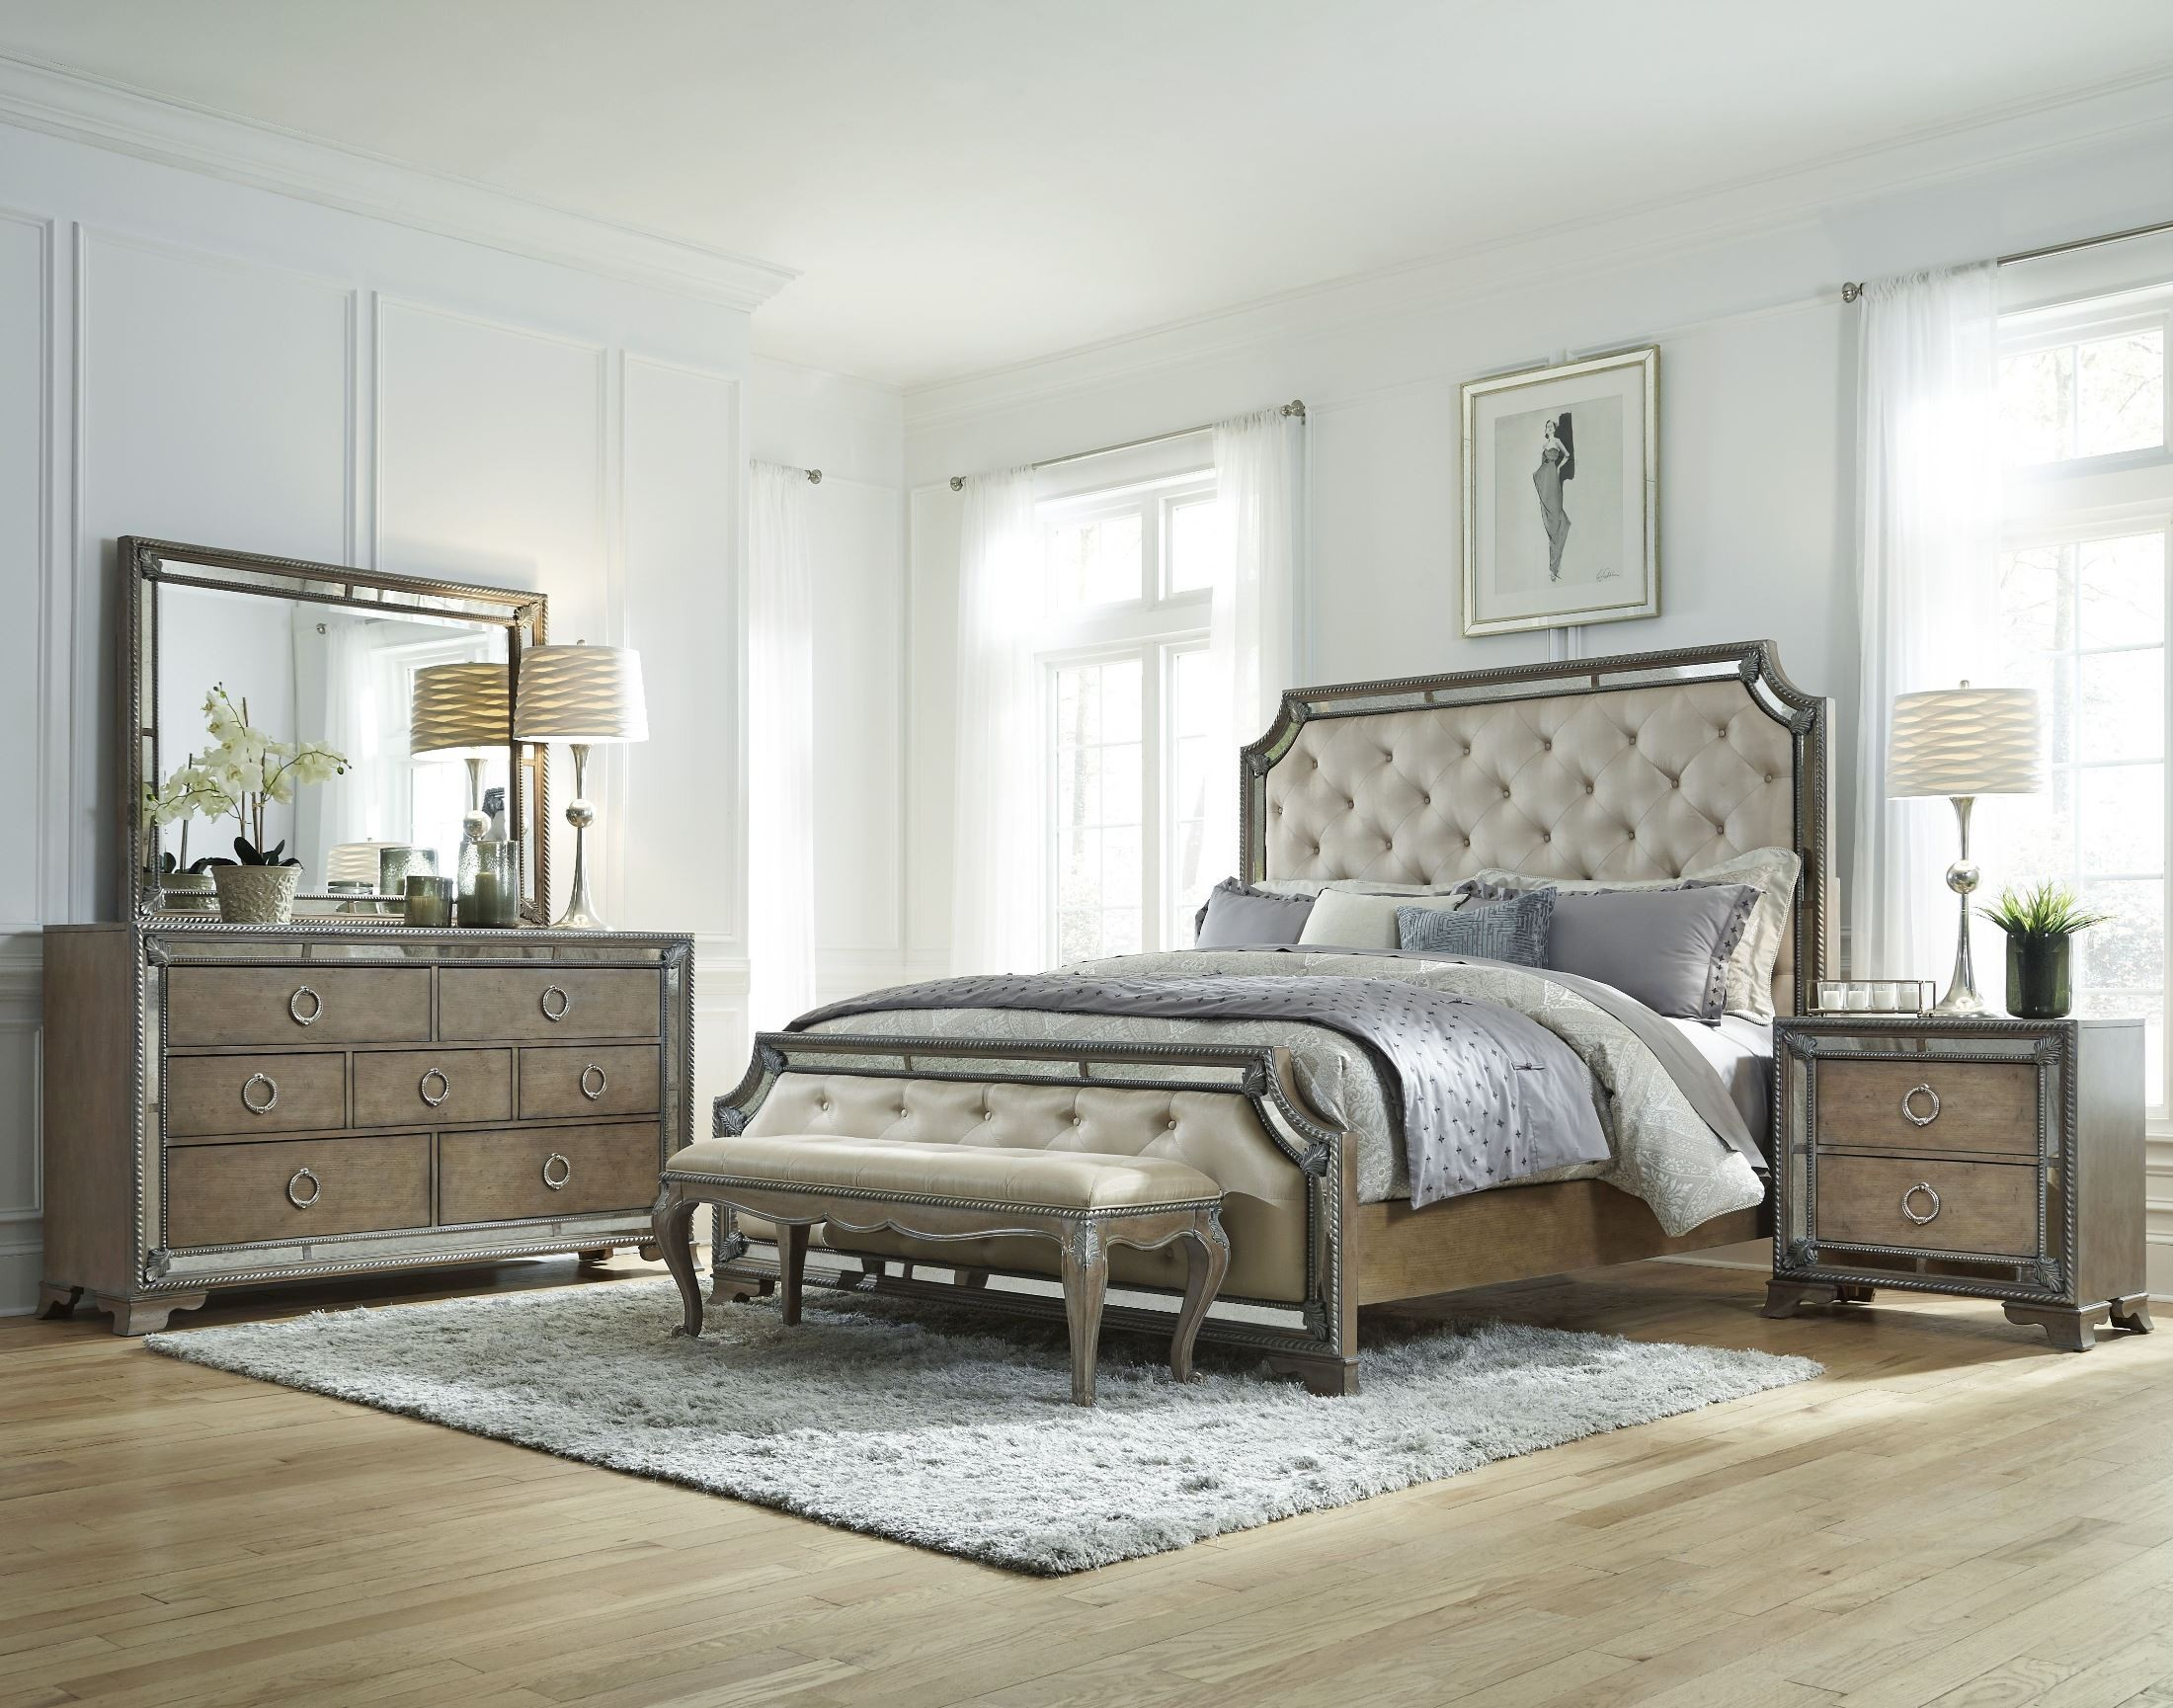 panel bedroom set from pulaski 757170 71 72 coleman furniture